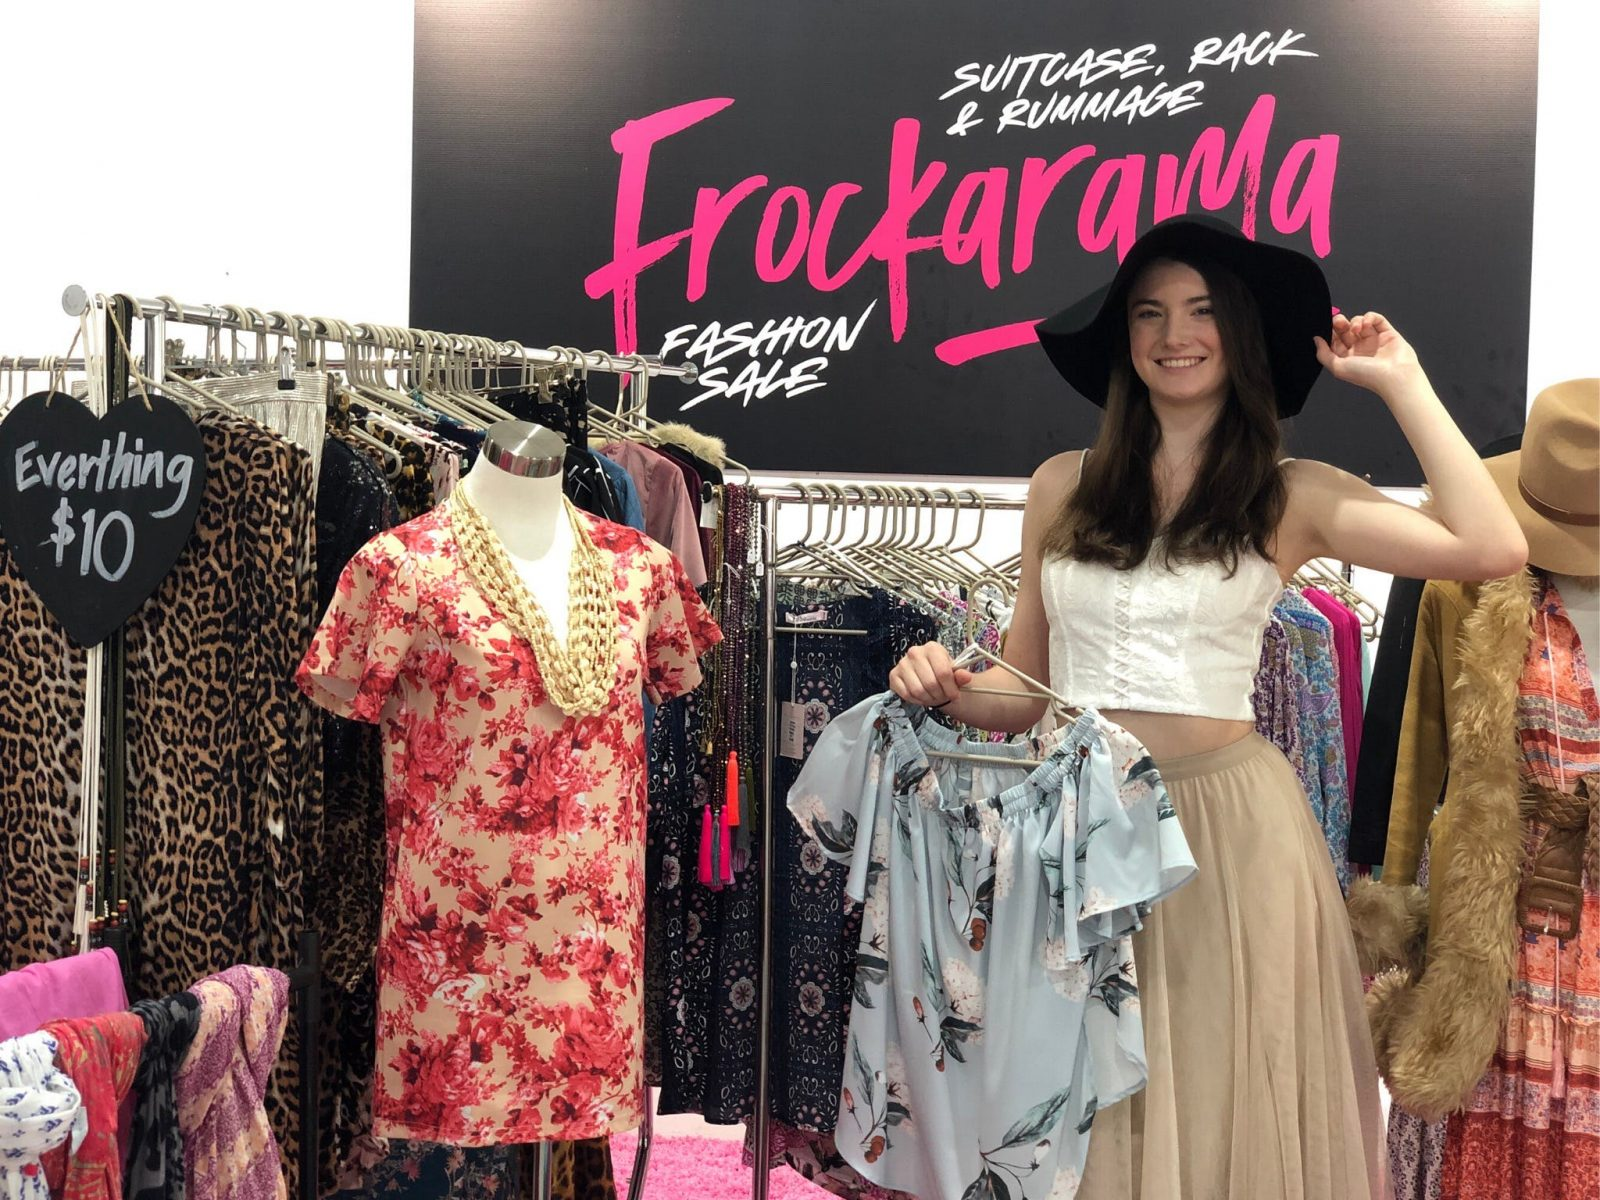 Frockarama buy & sell fashion event